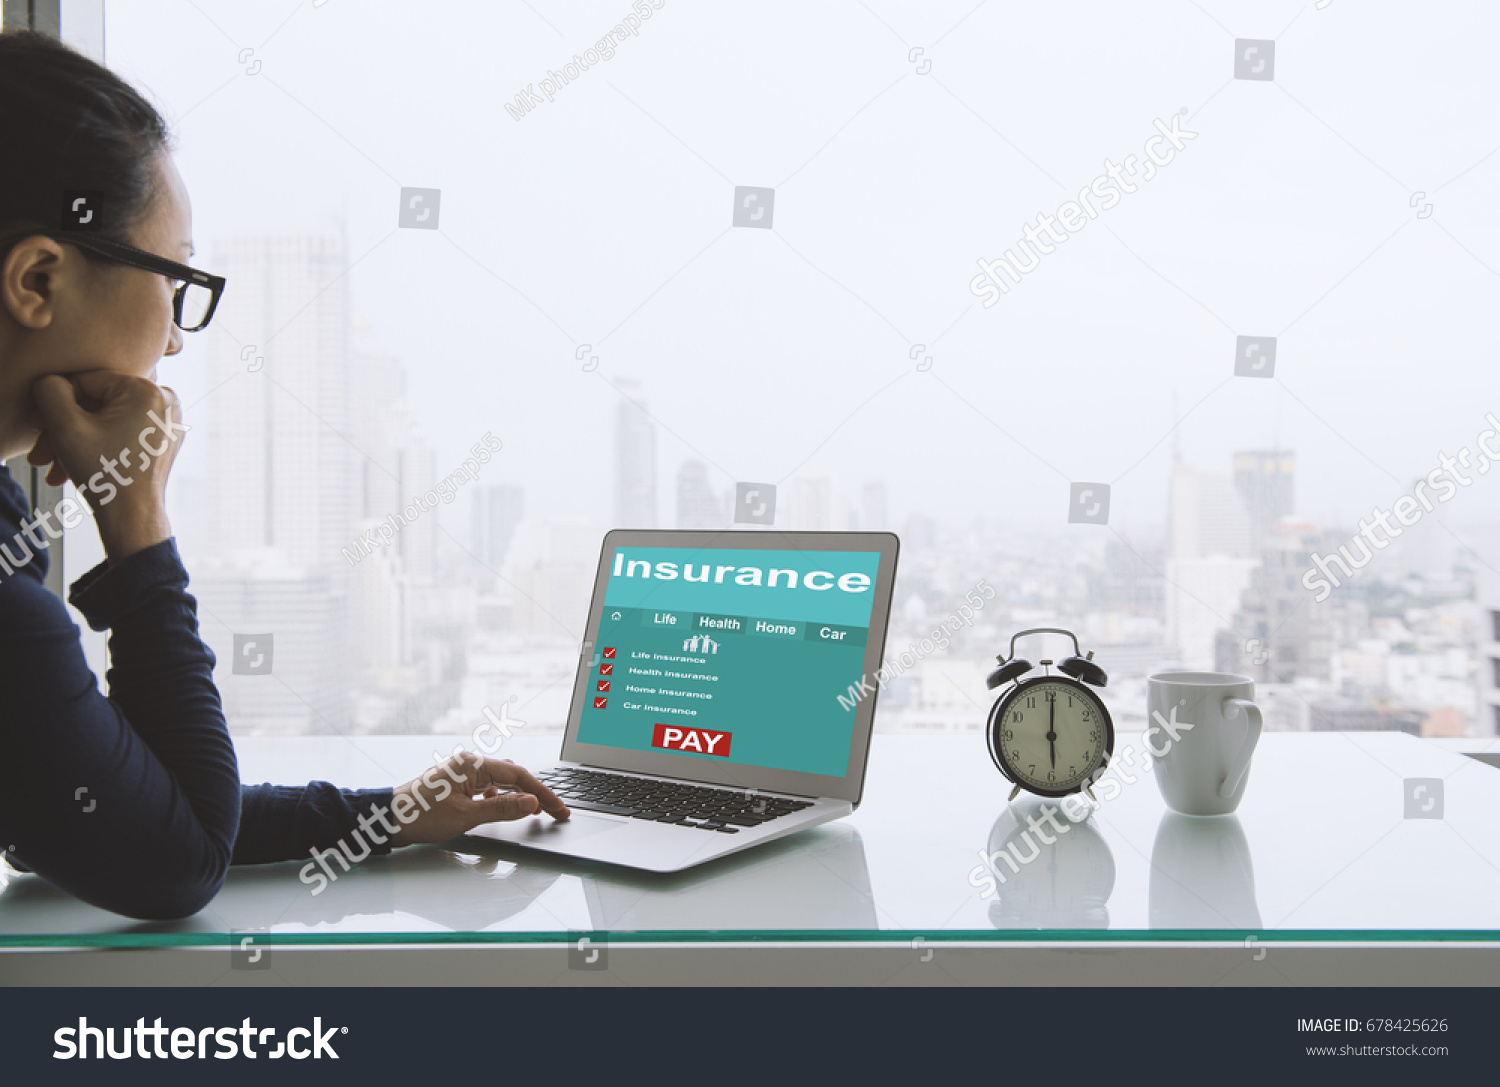 Insurance Concept Women Use Laptops Search Stock Photo 678425626 ...